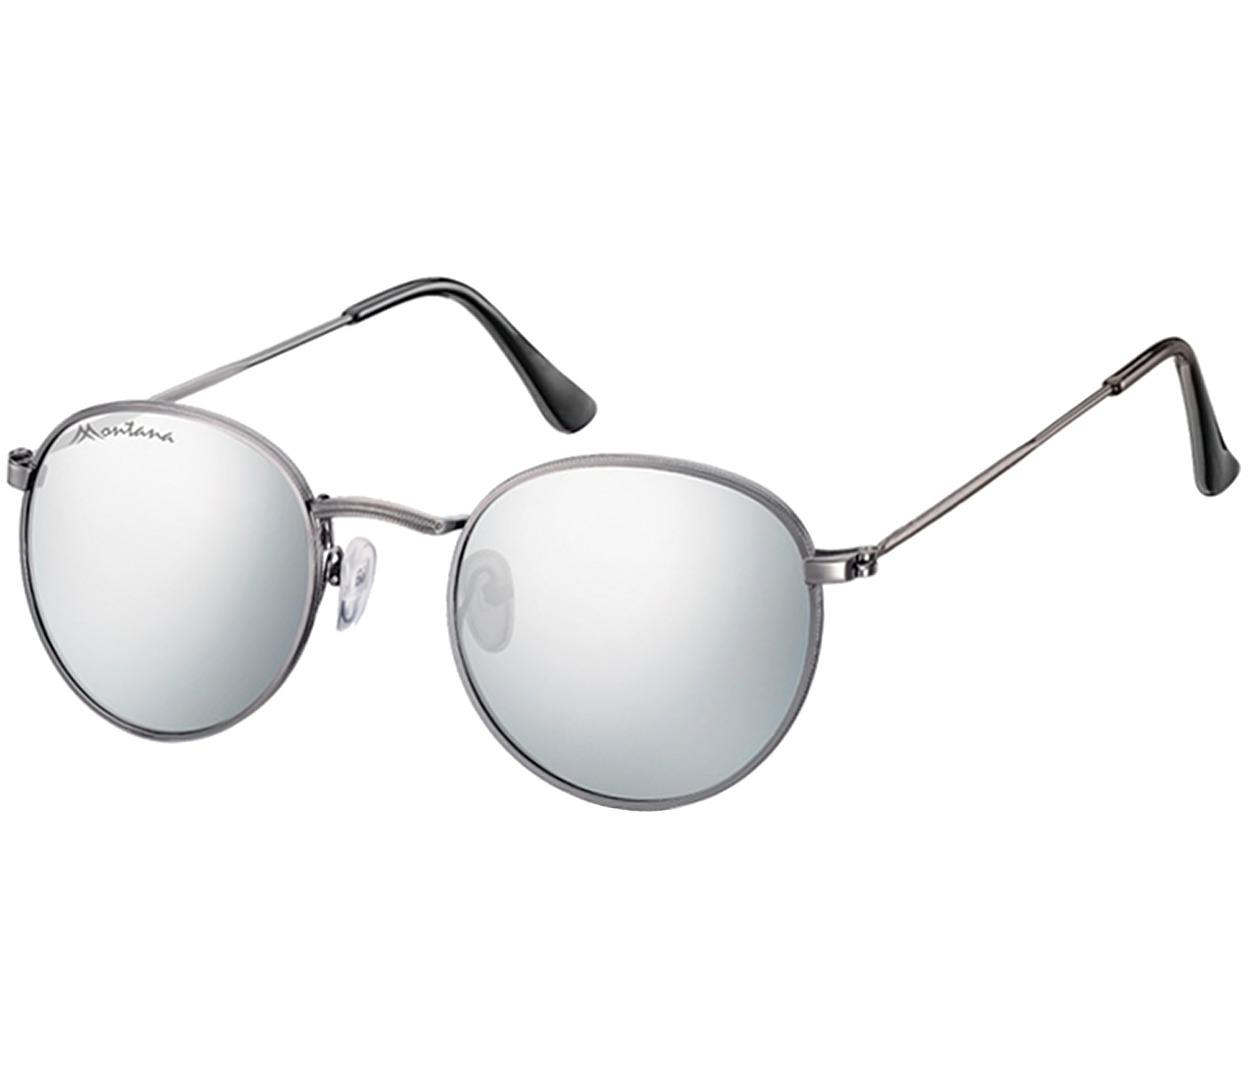 Main Image (Angle) - Eclipse (Gunmetal) Retro Sunglasses